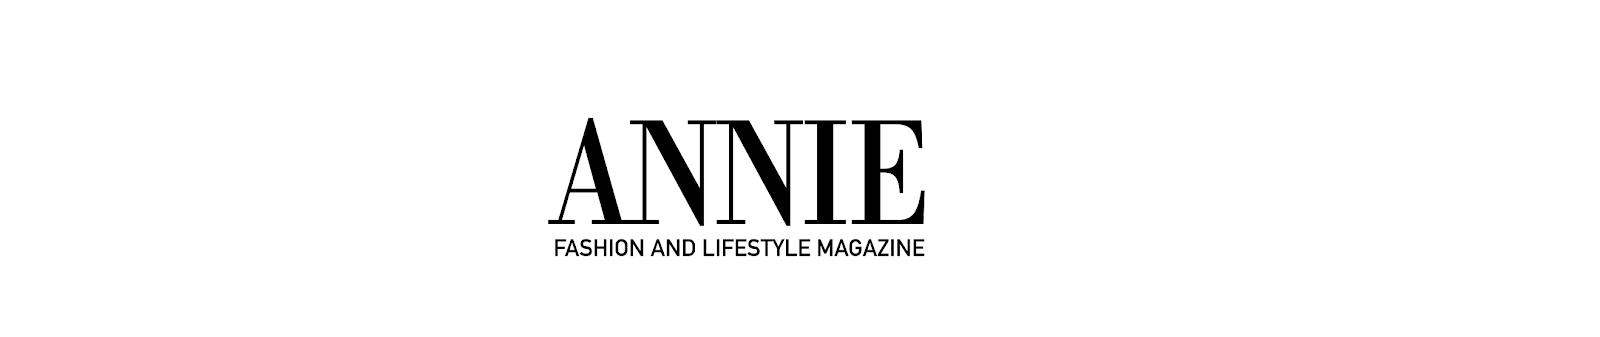 ANNIE - Online Magazine for Fashion Lifestyle Beauty